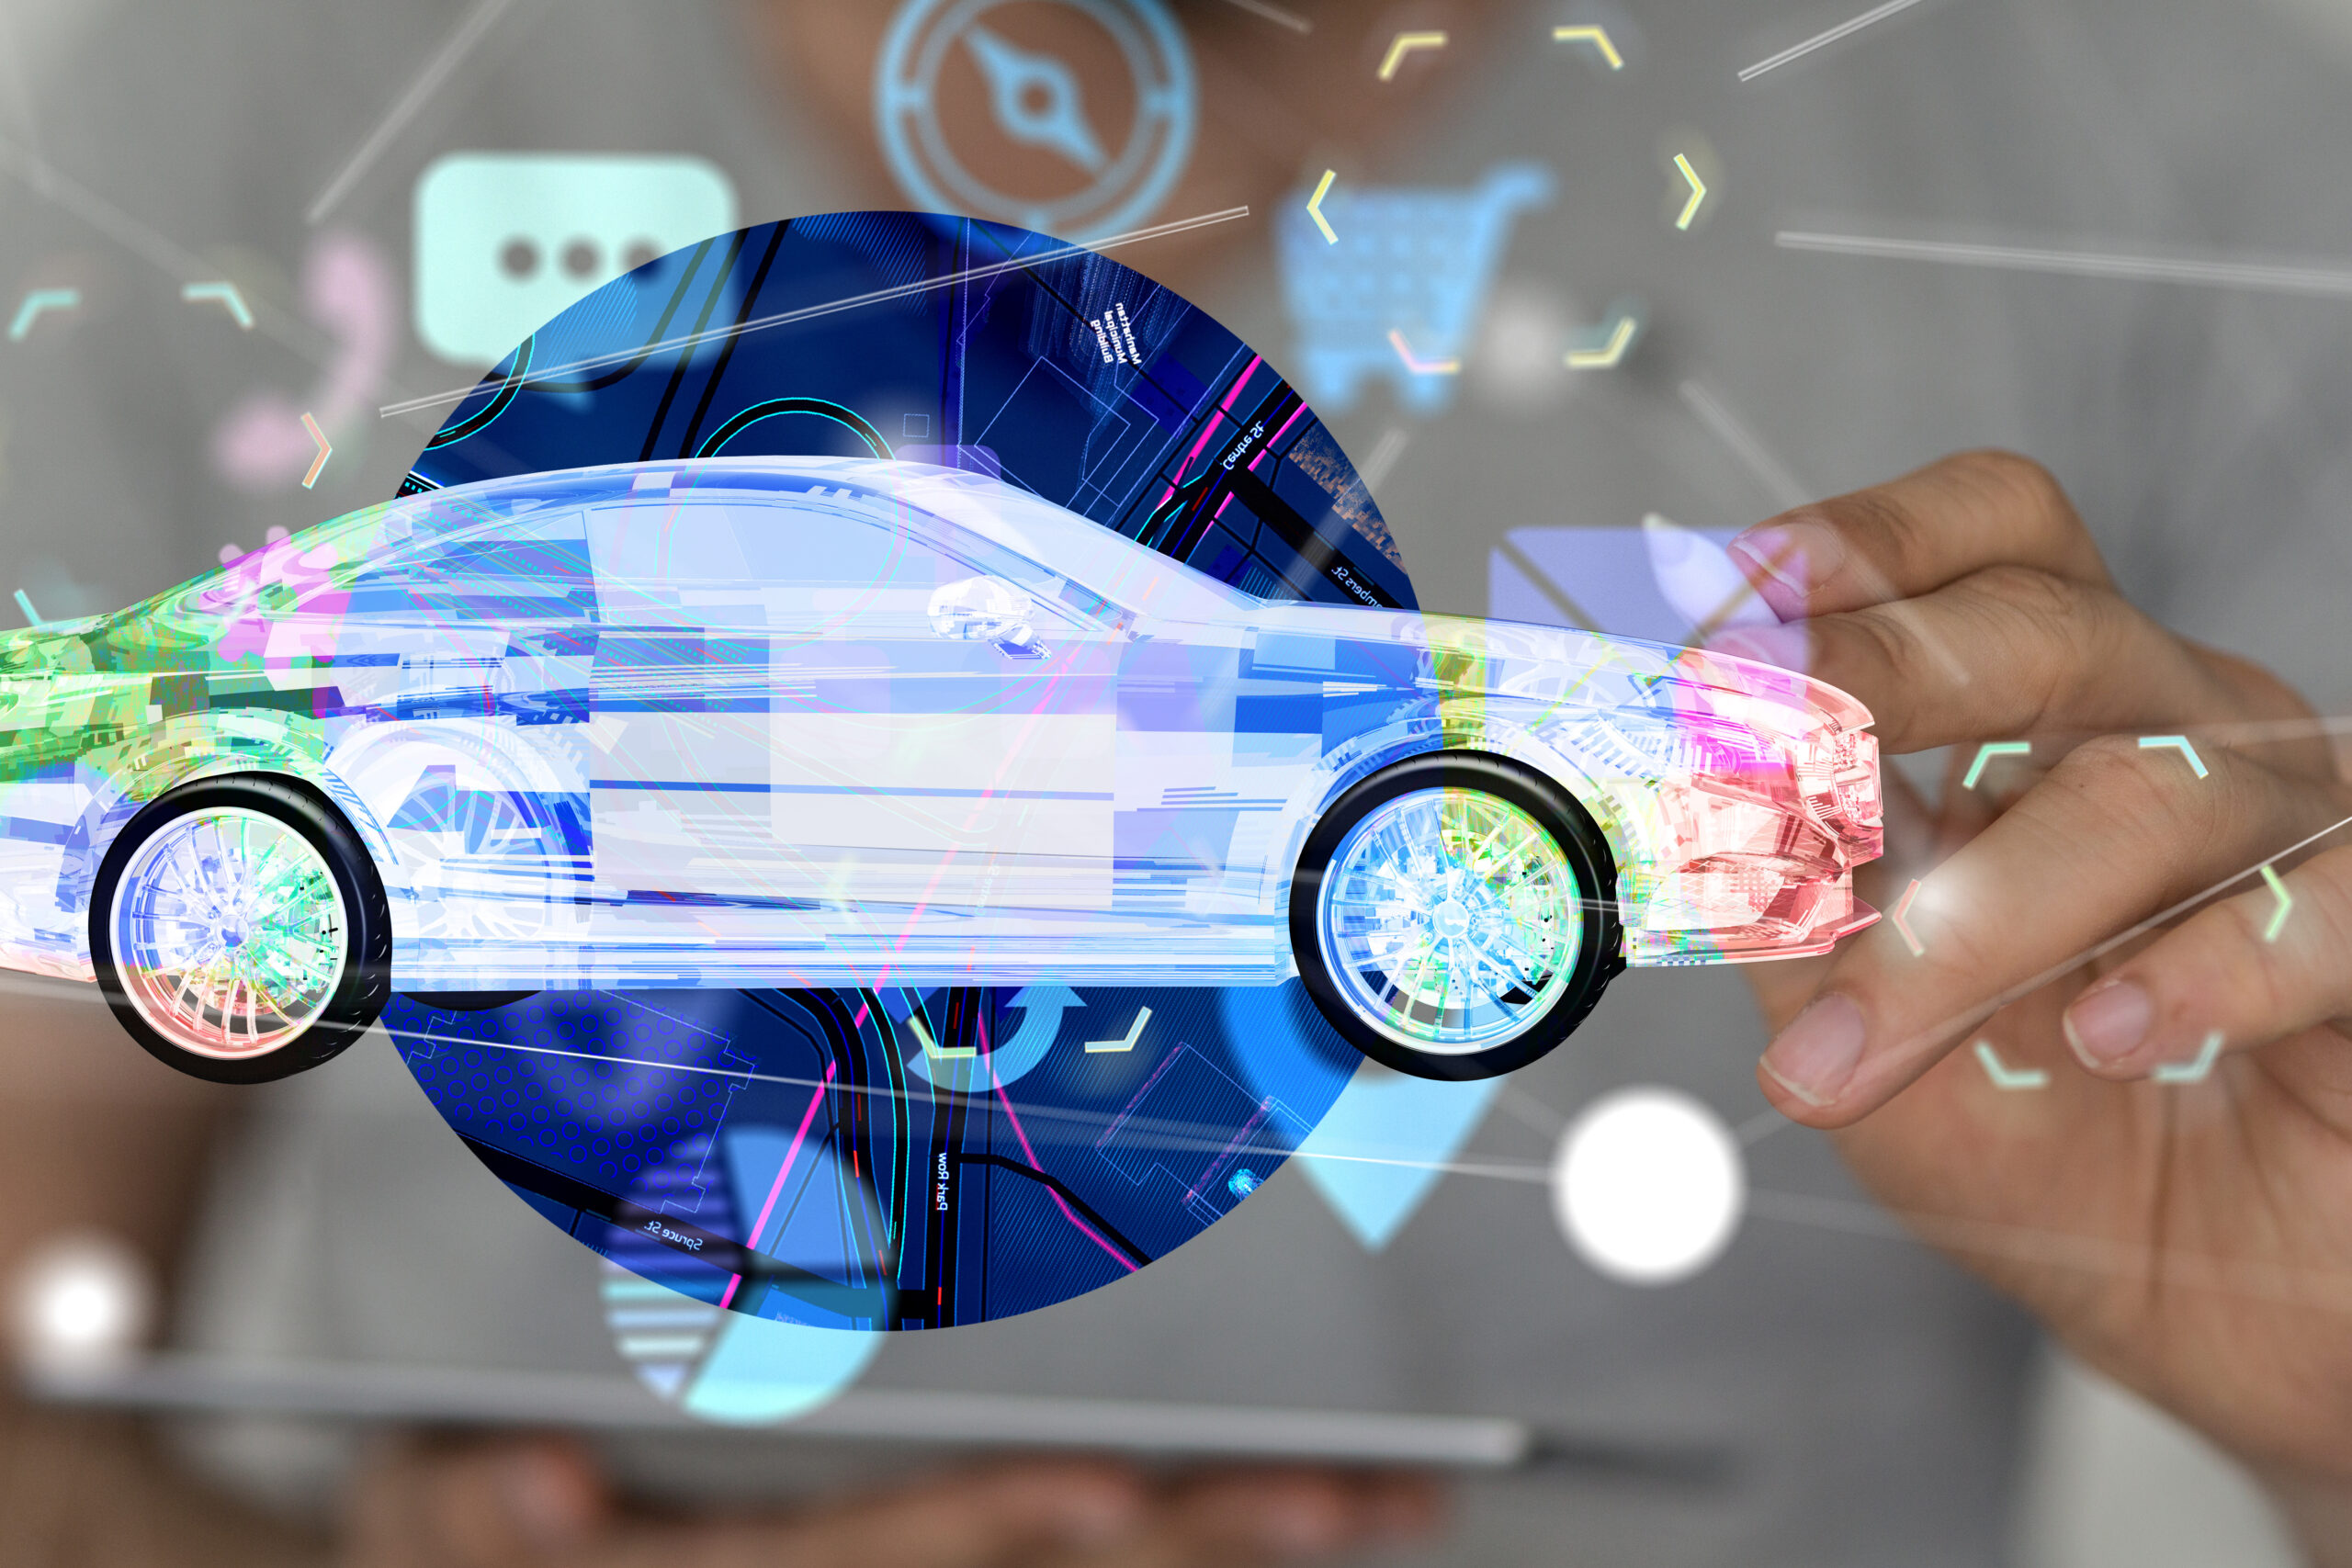 Digital Transformation and CRM solutions for Automotive Industry